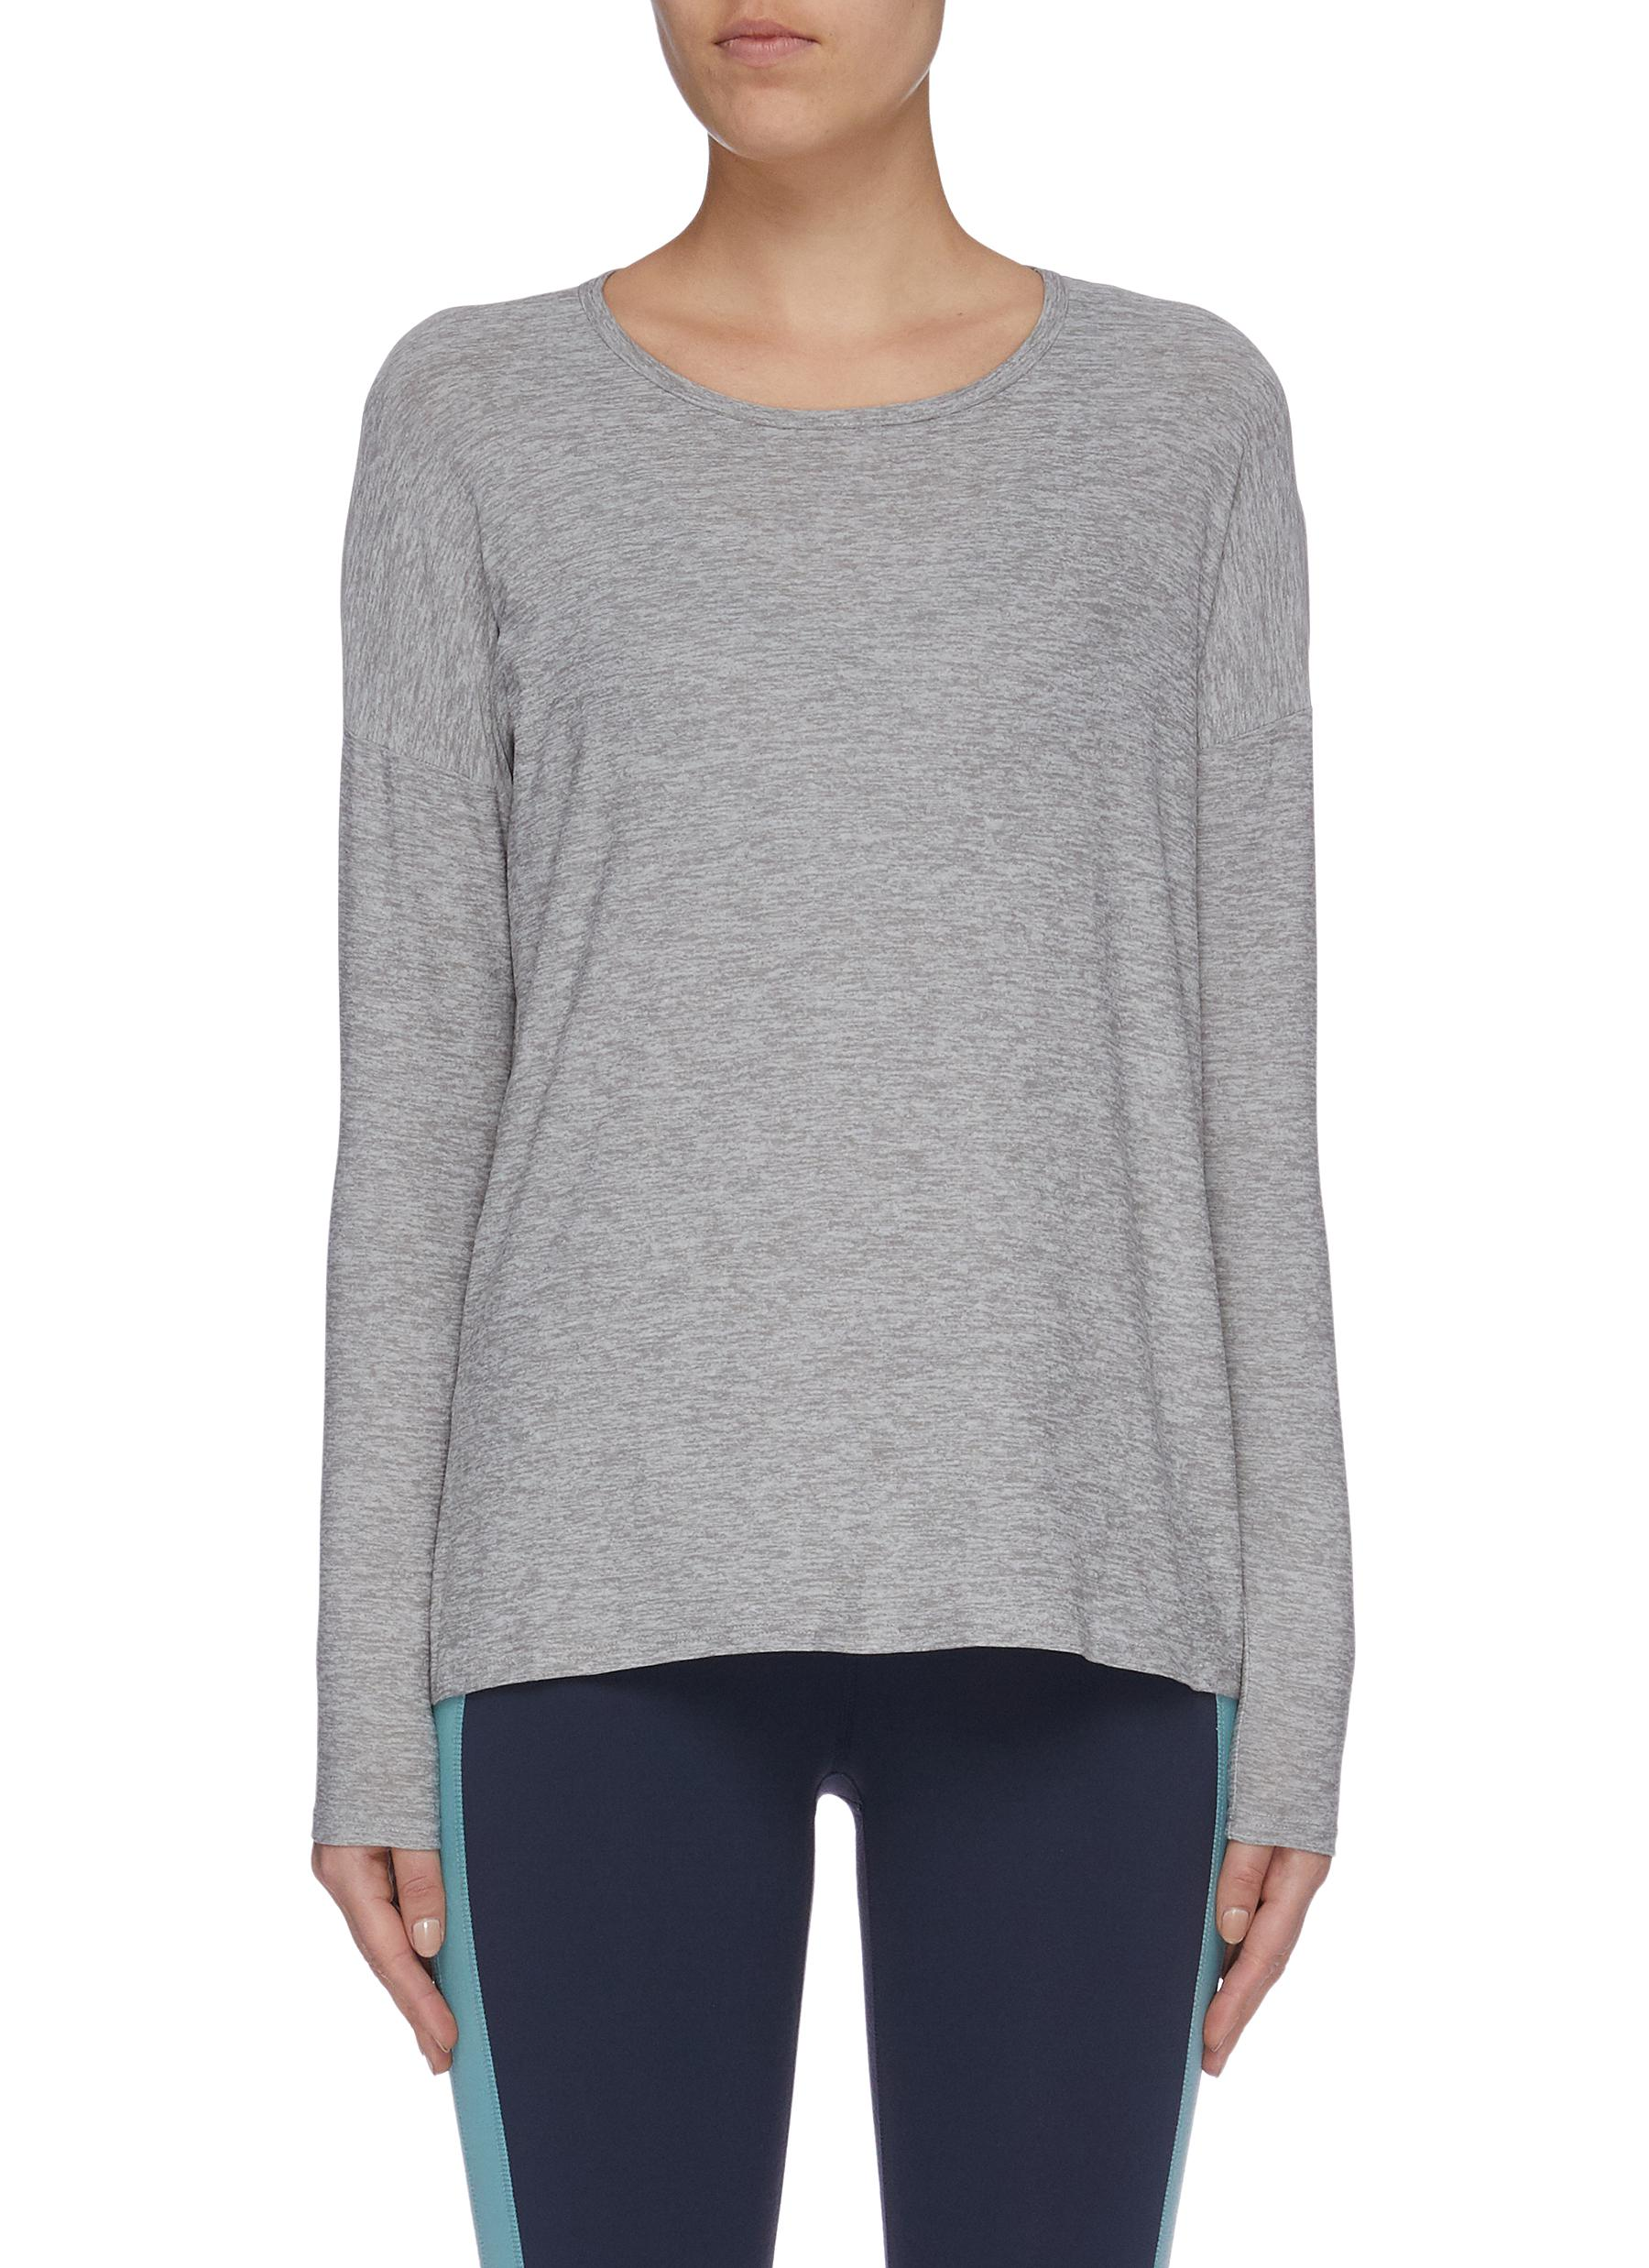 Draw The Line long sleeve slit back tie top by Beyond Yoga